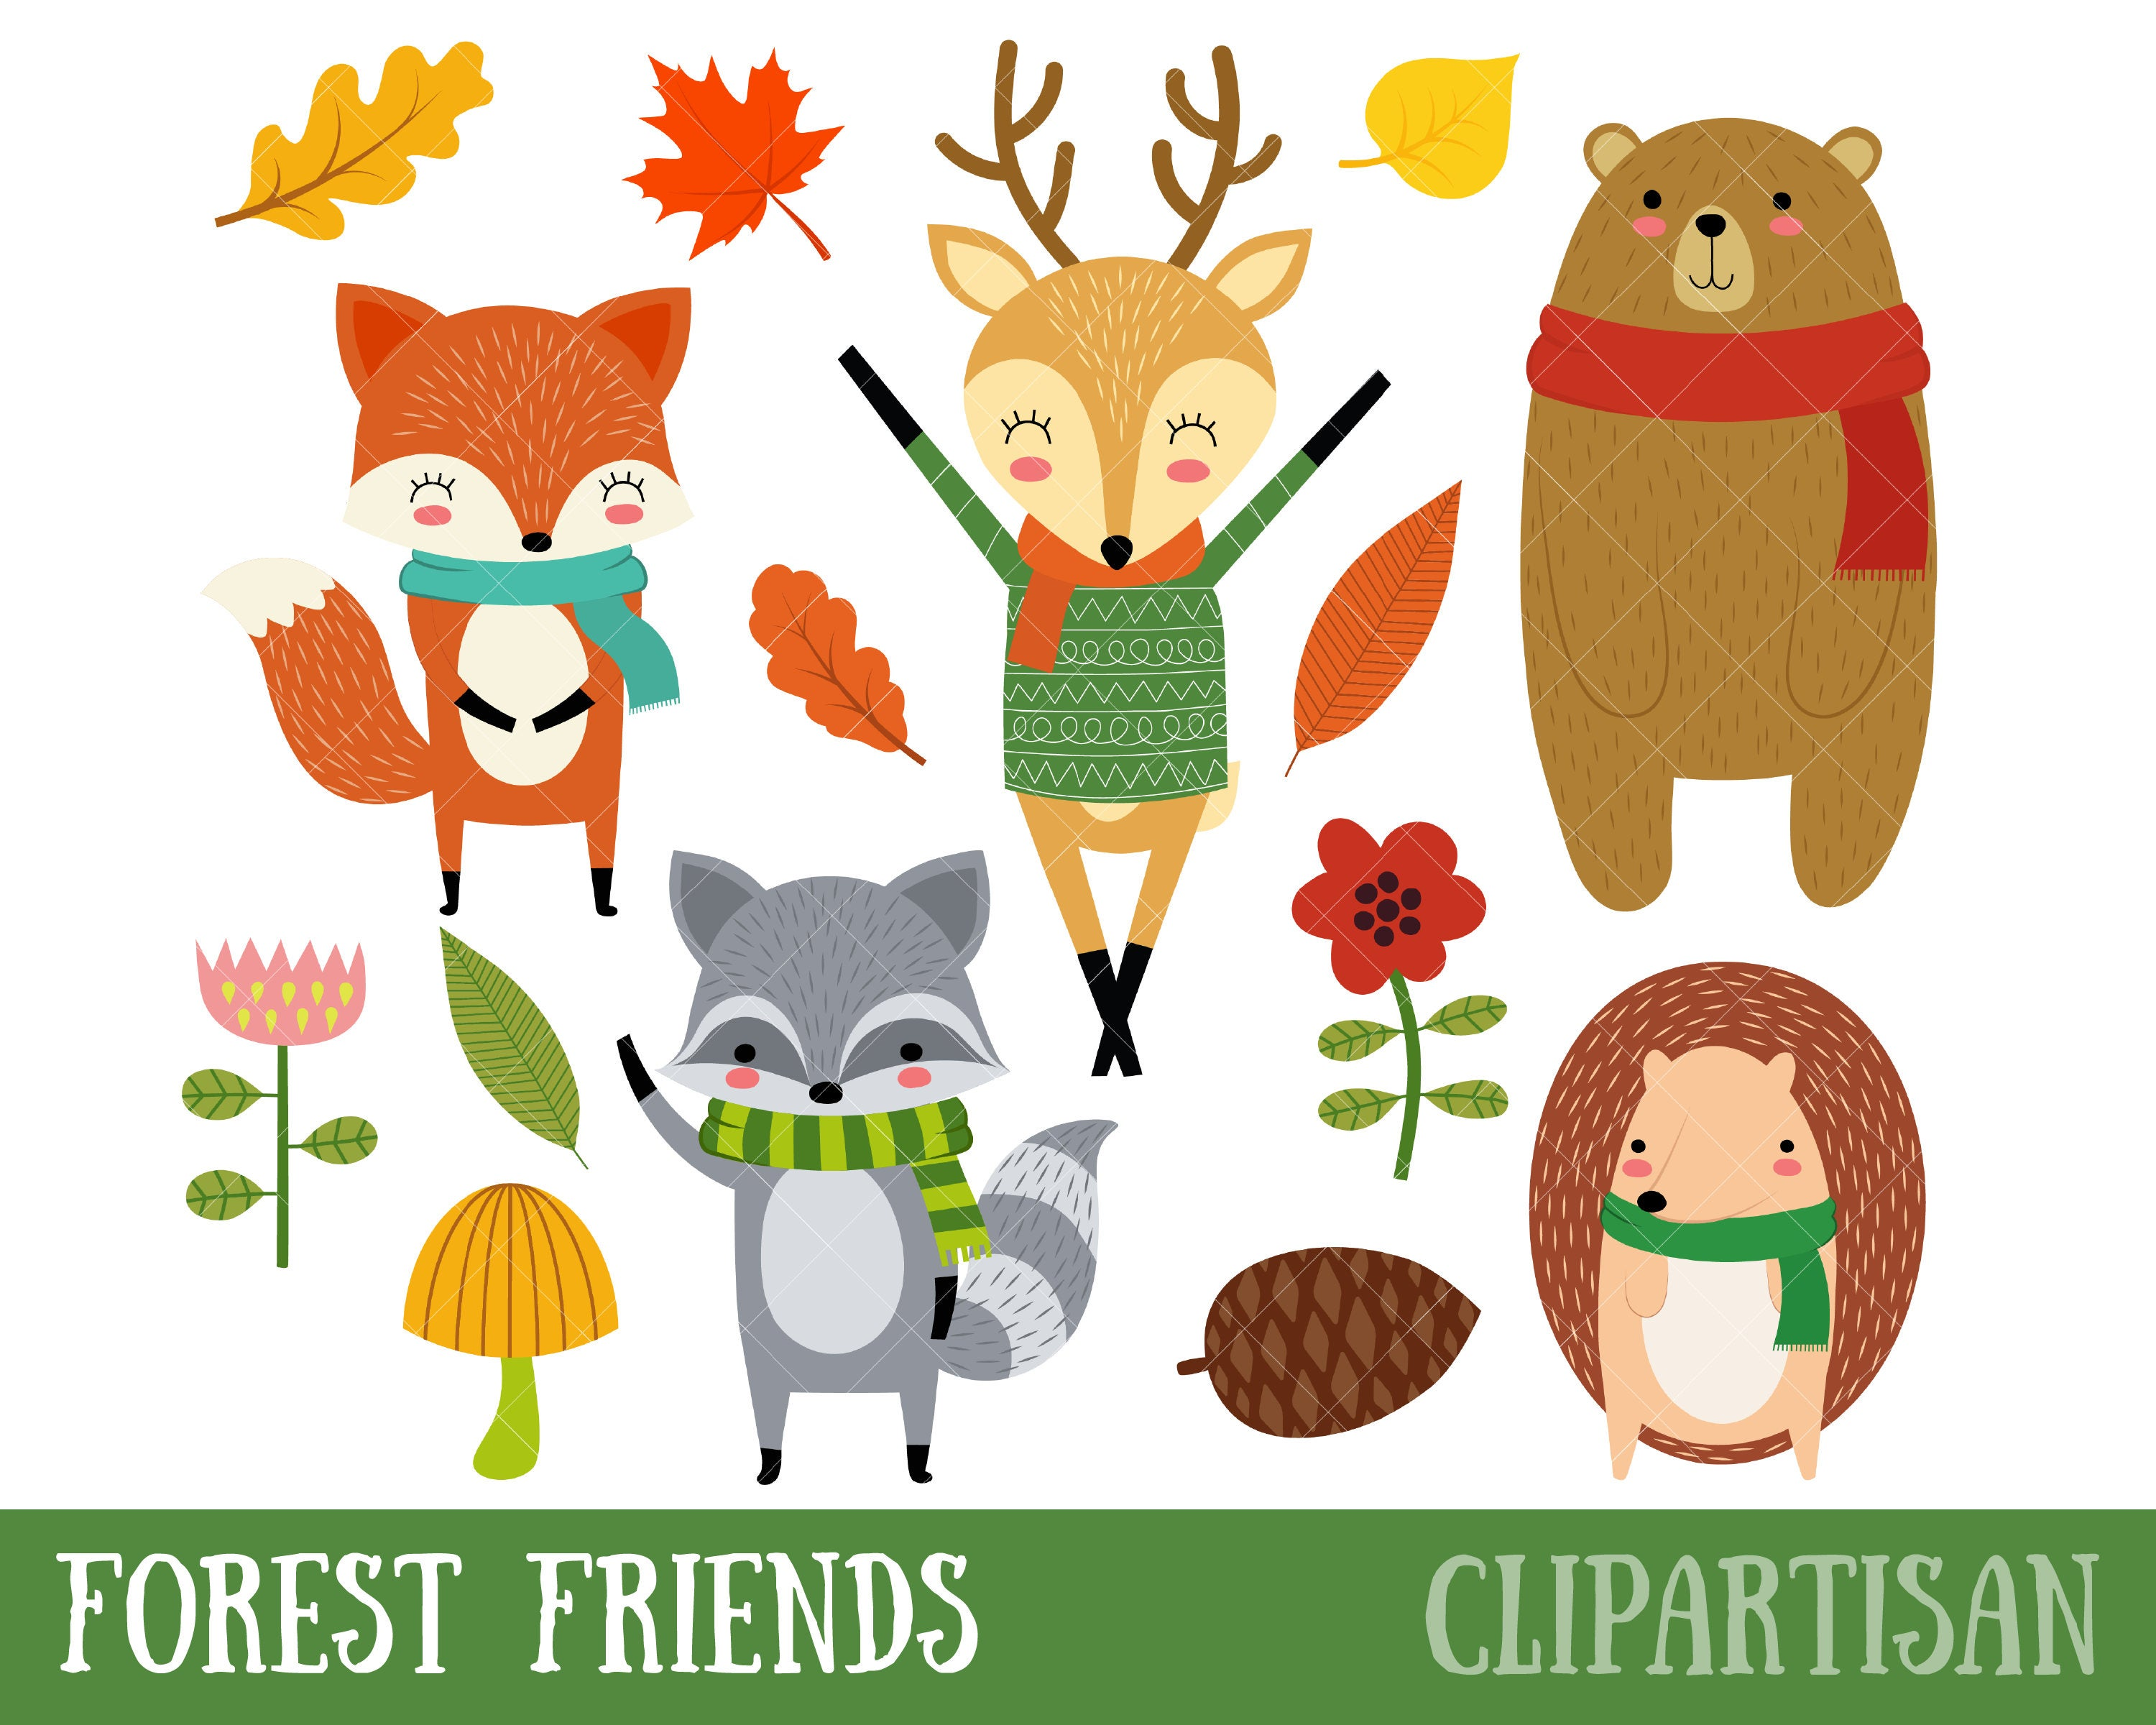 Forest Friends Clipart / Woodland Clipart / Cute Woodland Animals.